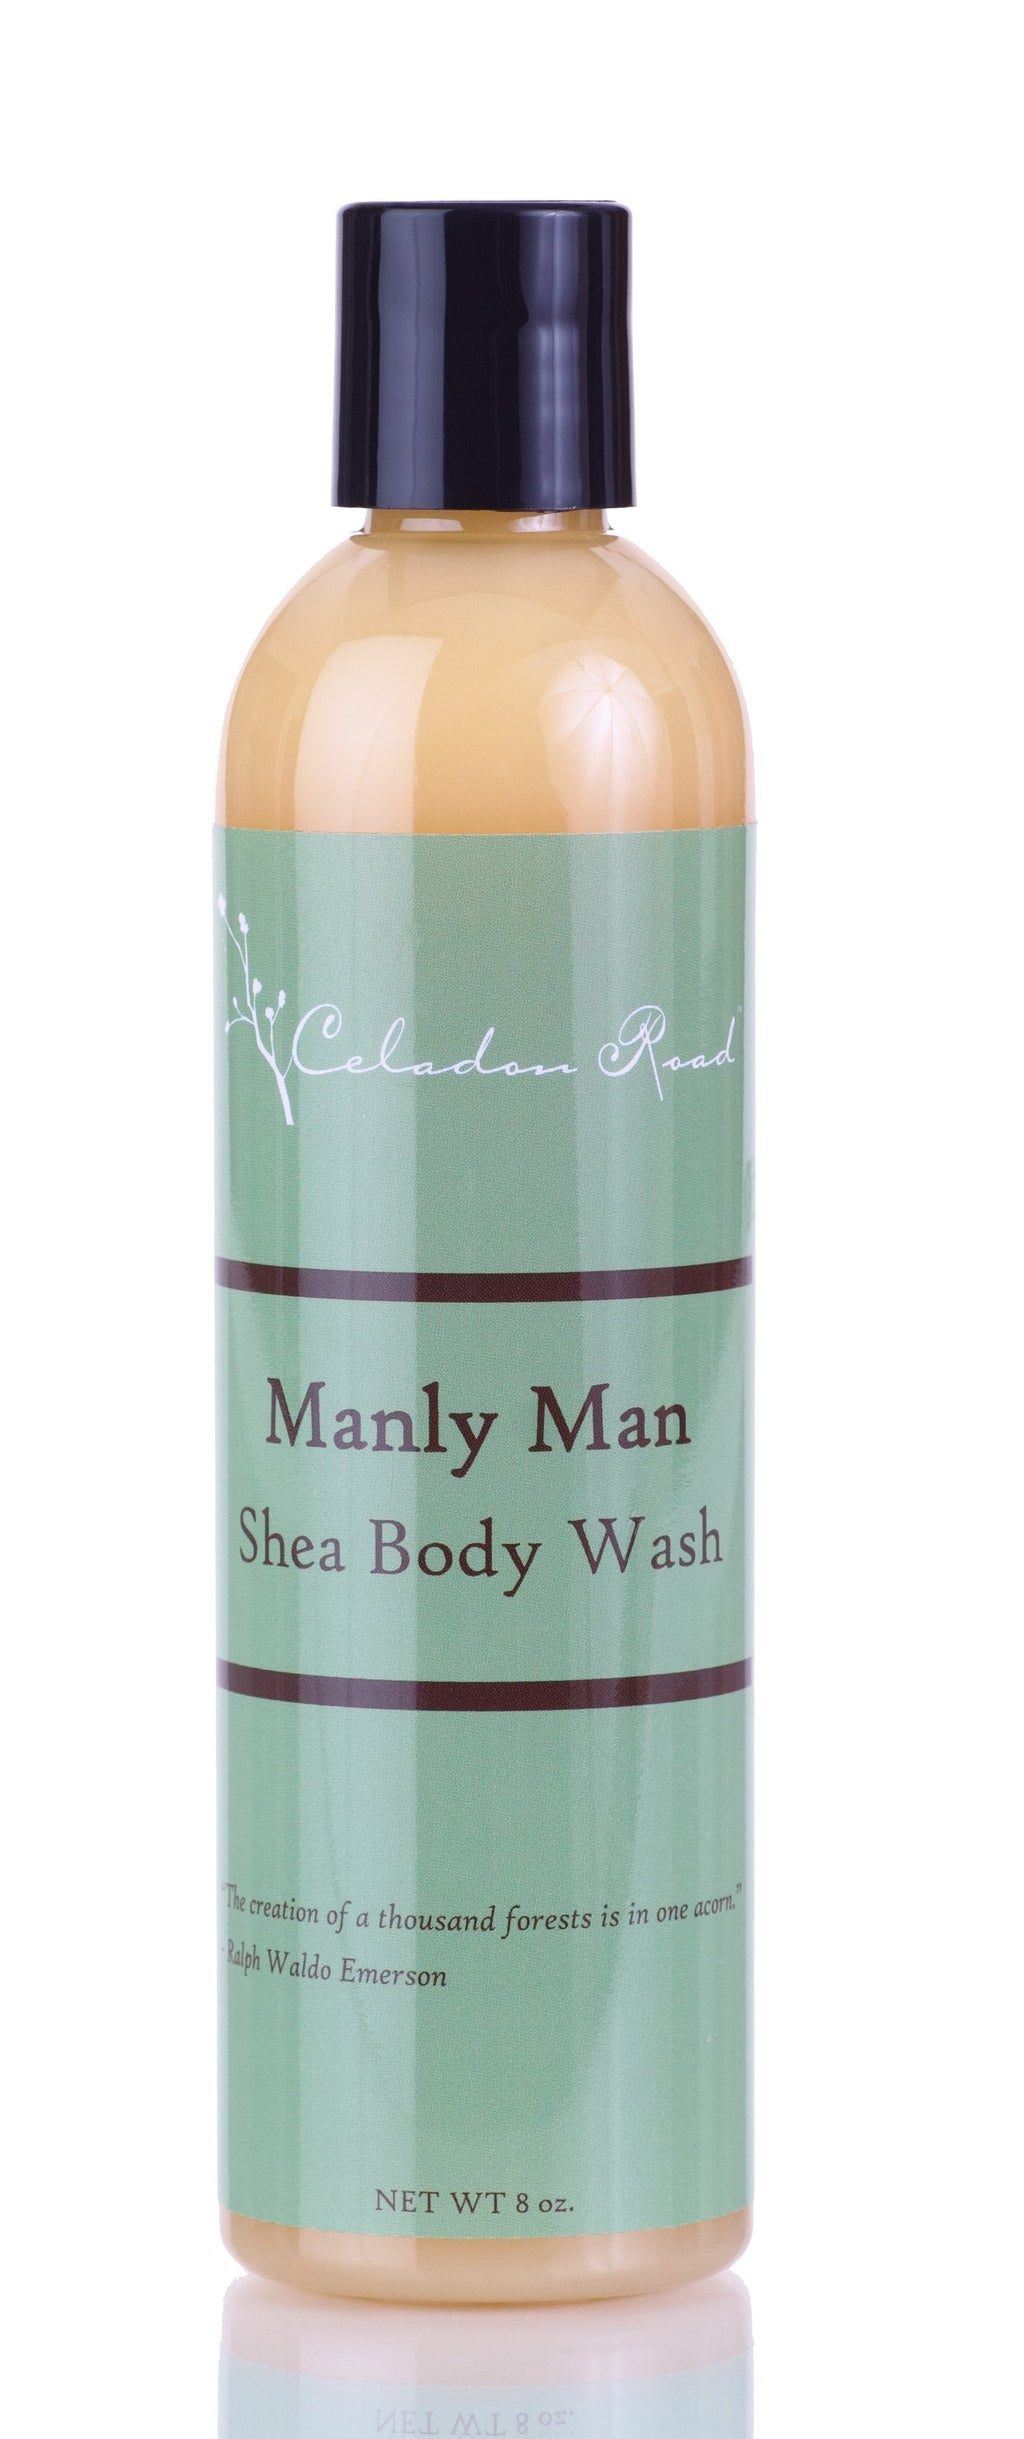 Manly Man Shea Body Wash- Celadon Road- www.celadonroad.com